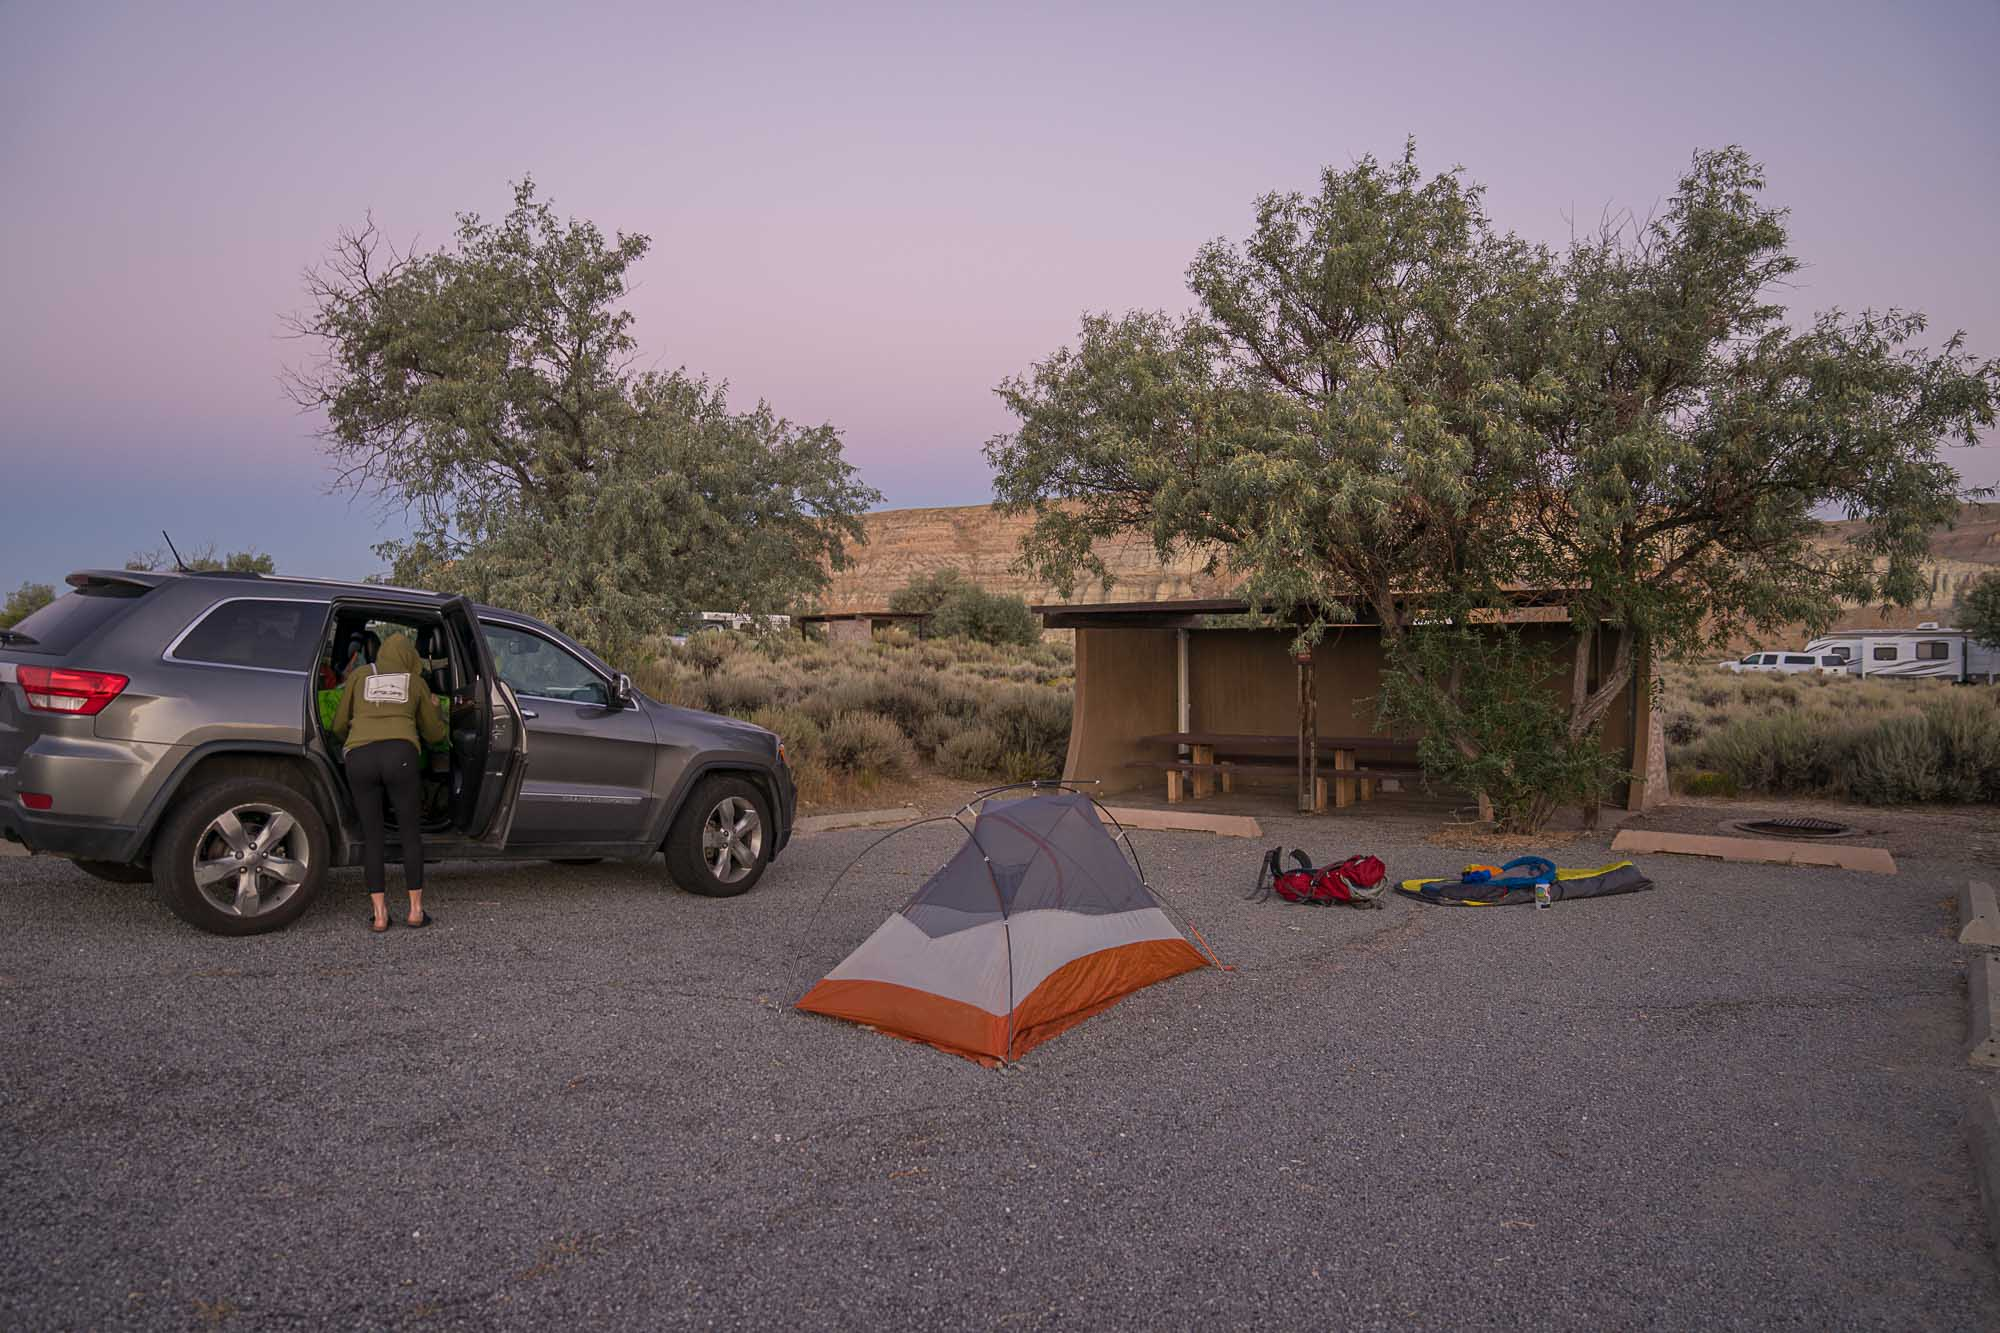 A tent for car camping in Green River, Wyoming.